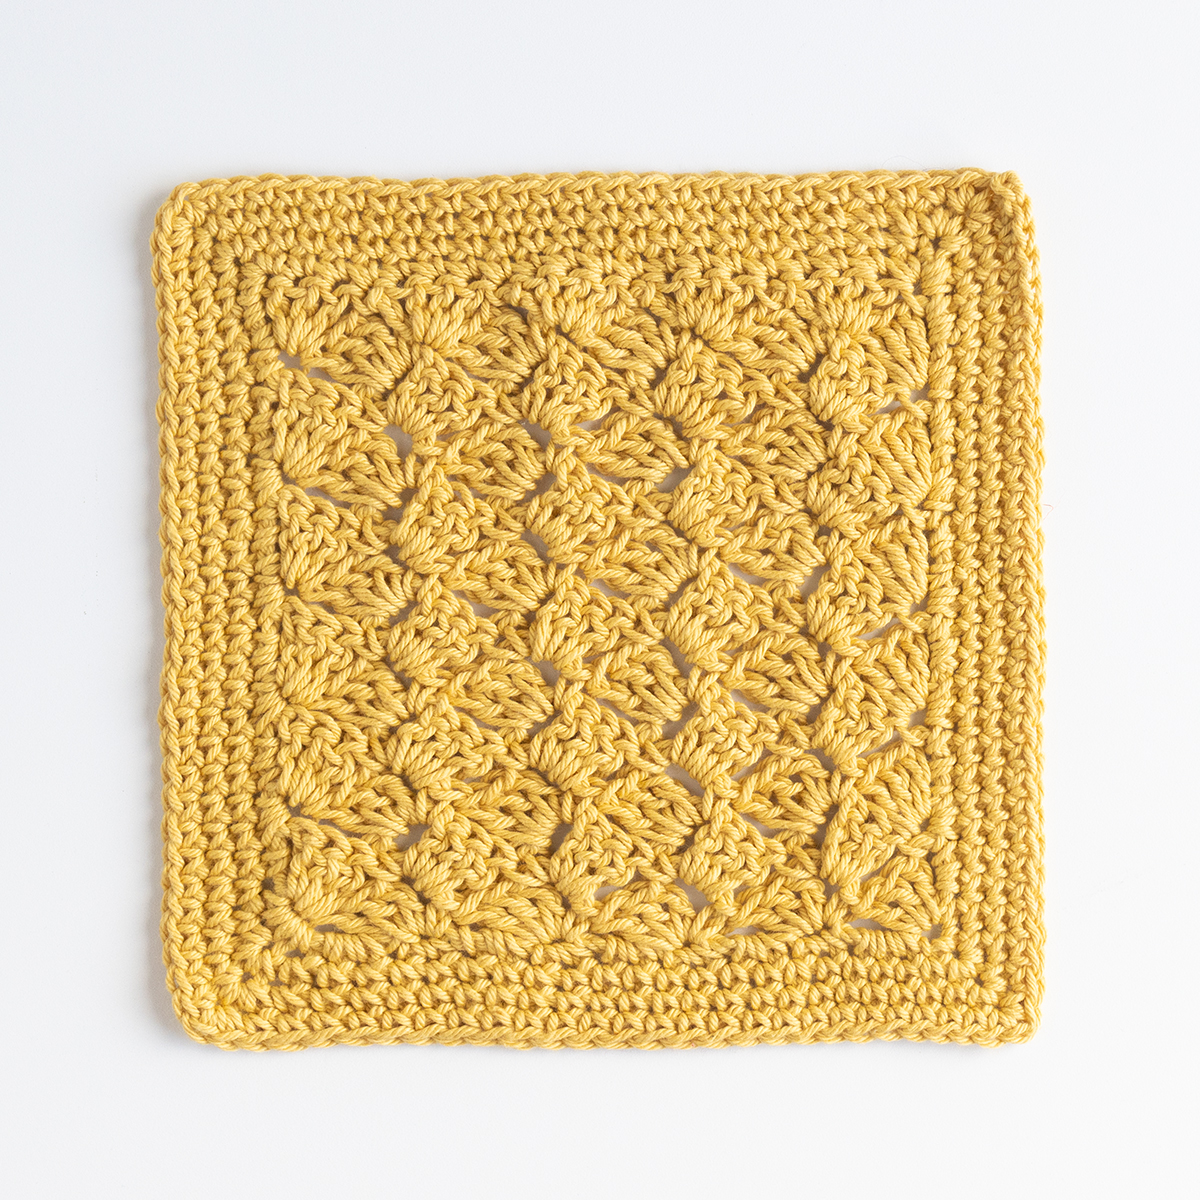 Custard Pie Crochet Dishcloth